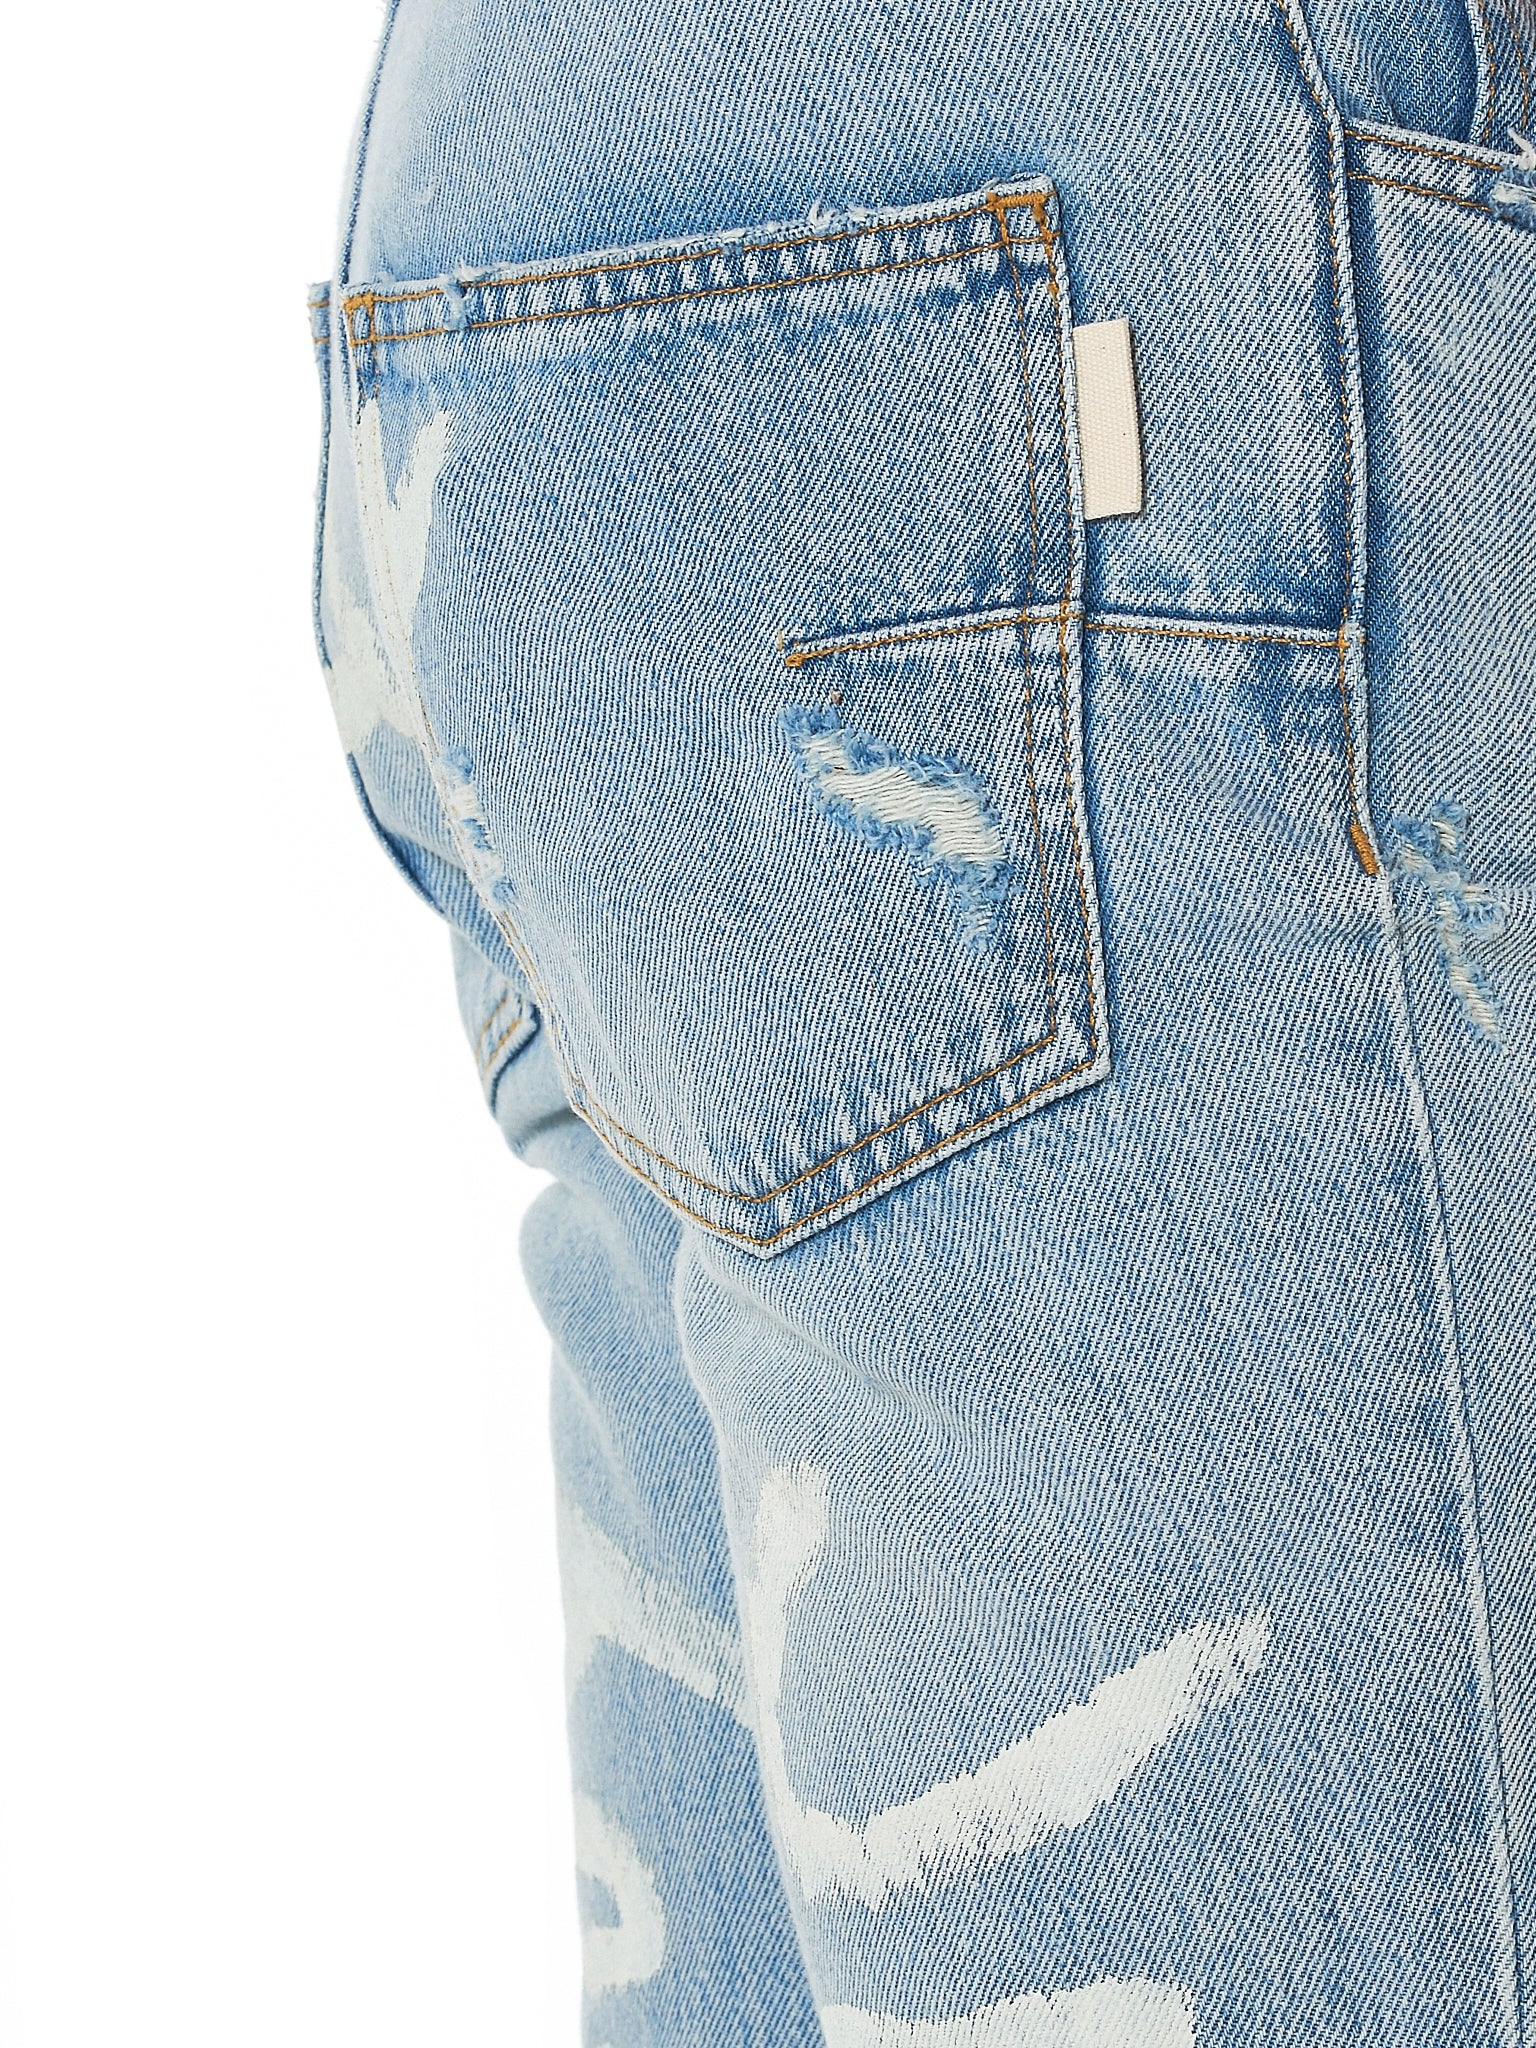 IH NOM UH NIT Distressed Denim - Hlorenzo Detail 1